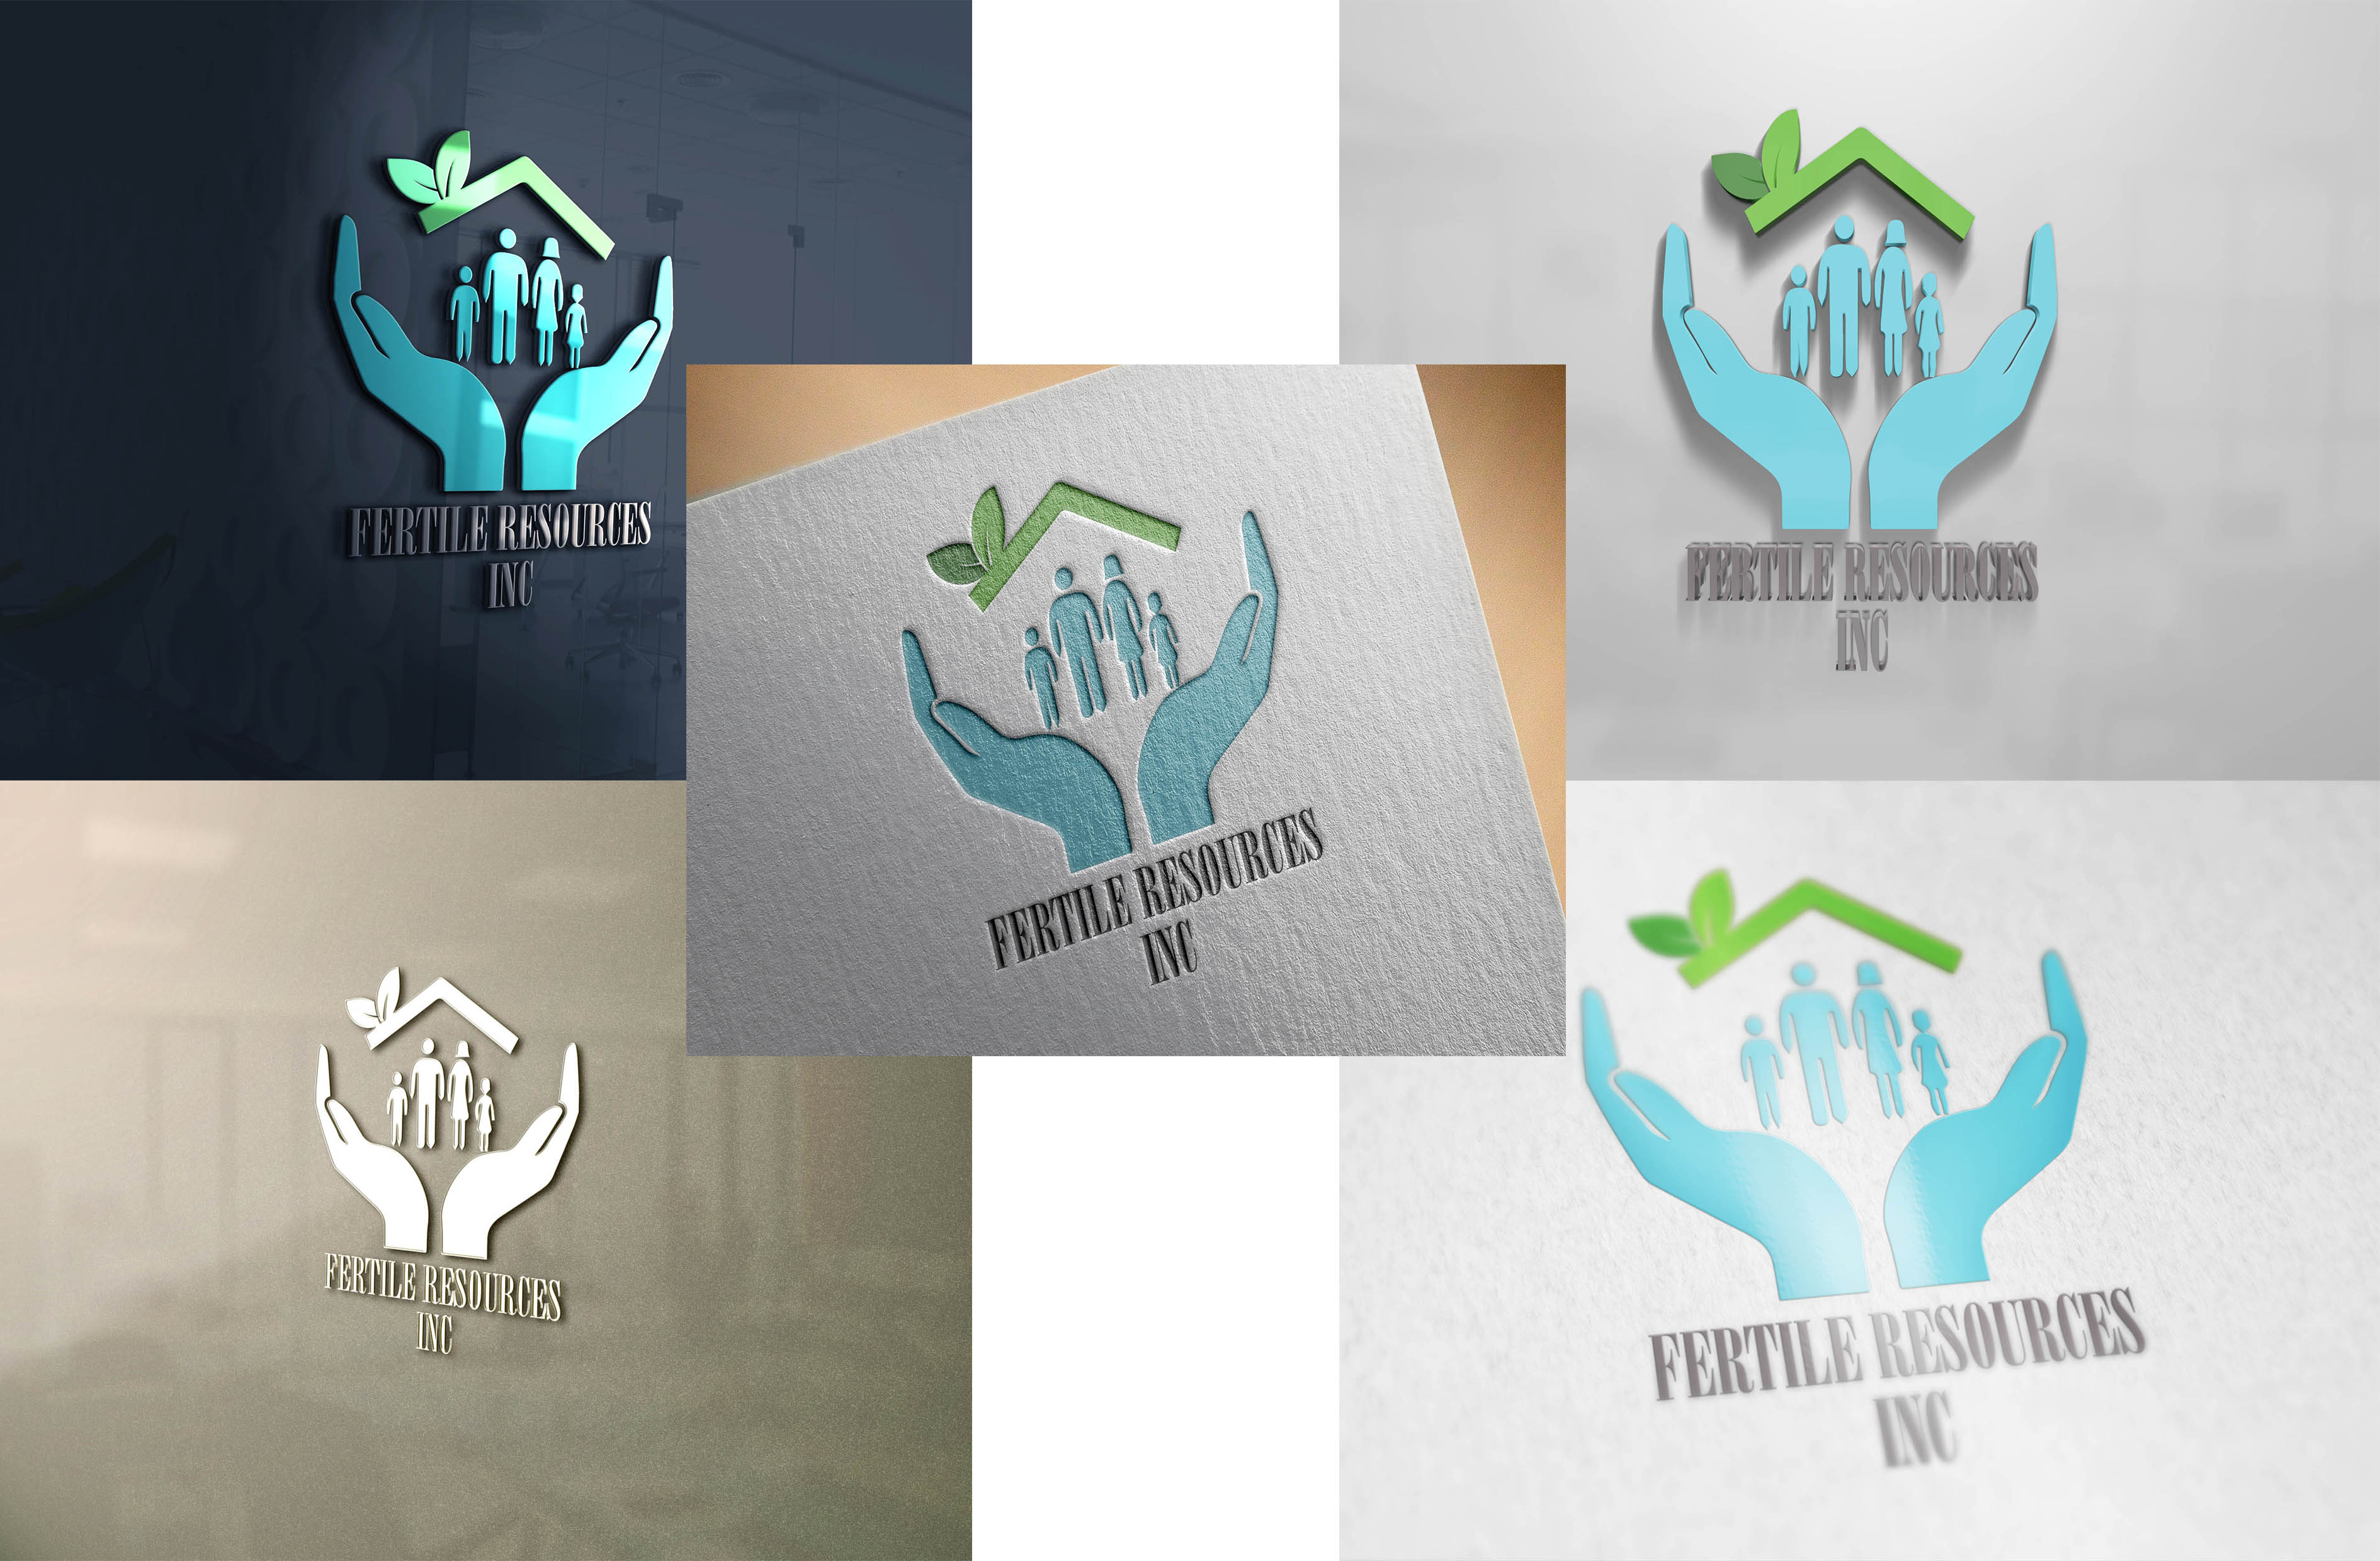 Logo Design by Umair ahmed Iqbal - Entry No. 96 in the Logo Design Contest Fertile Resources, Inc. Logo Design.